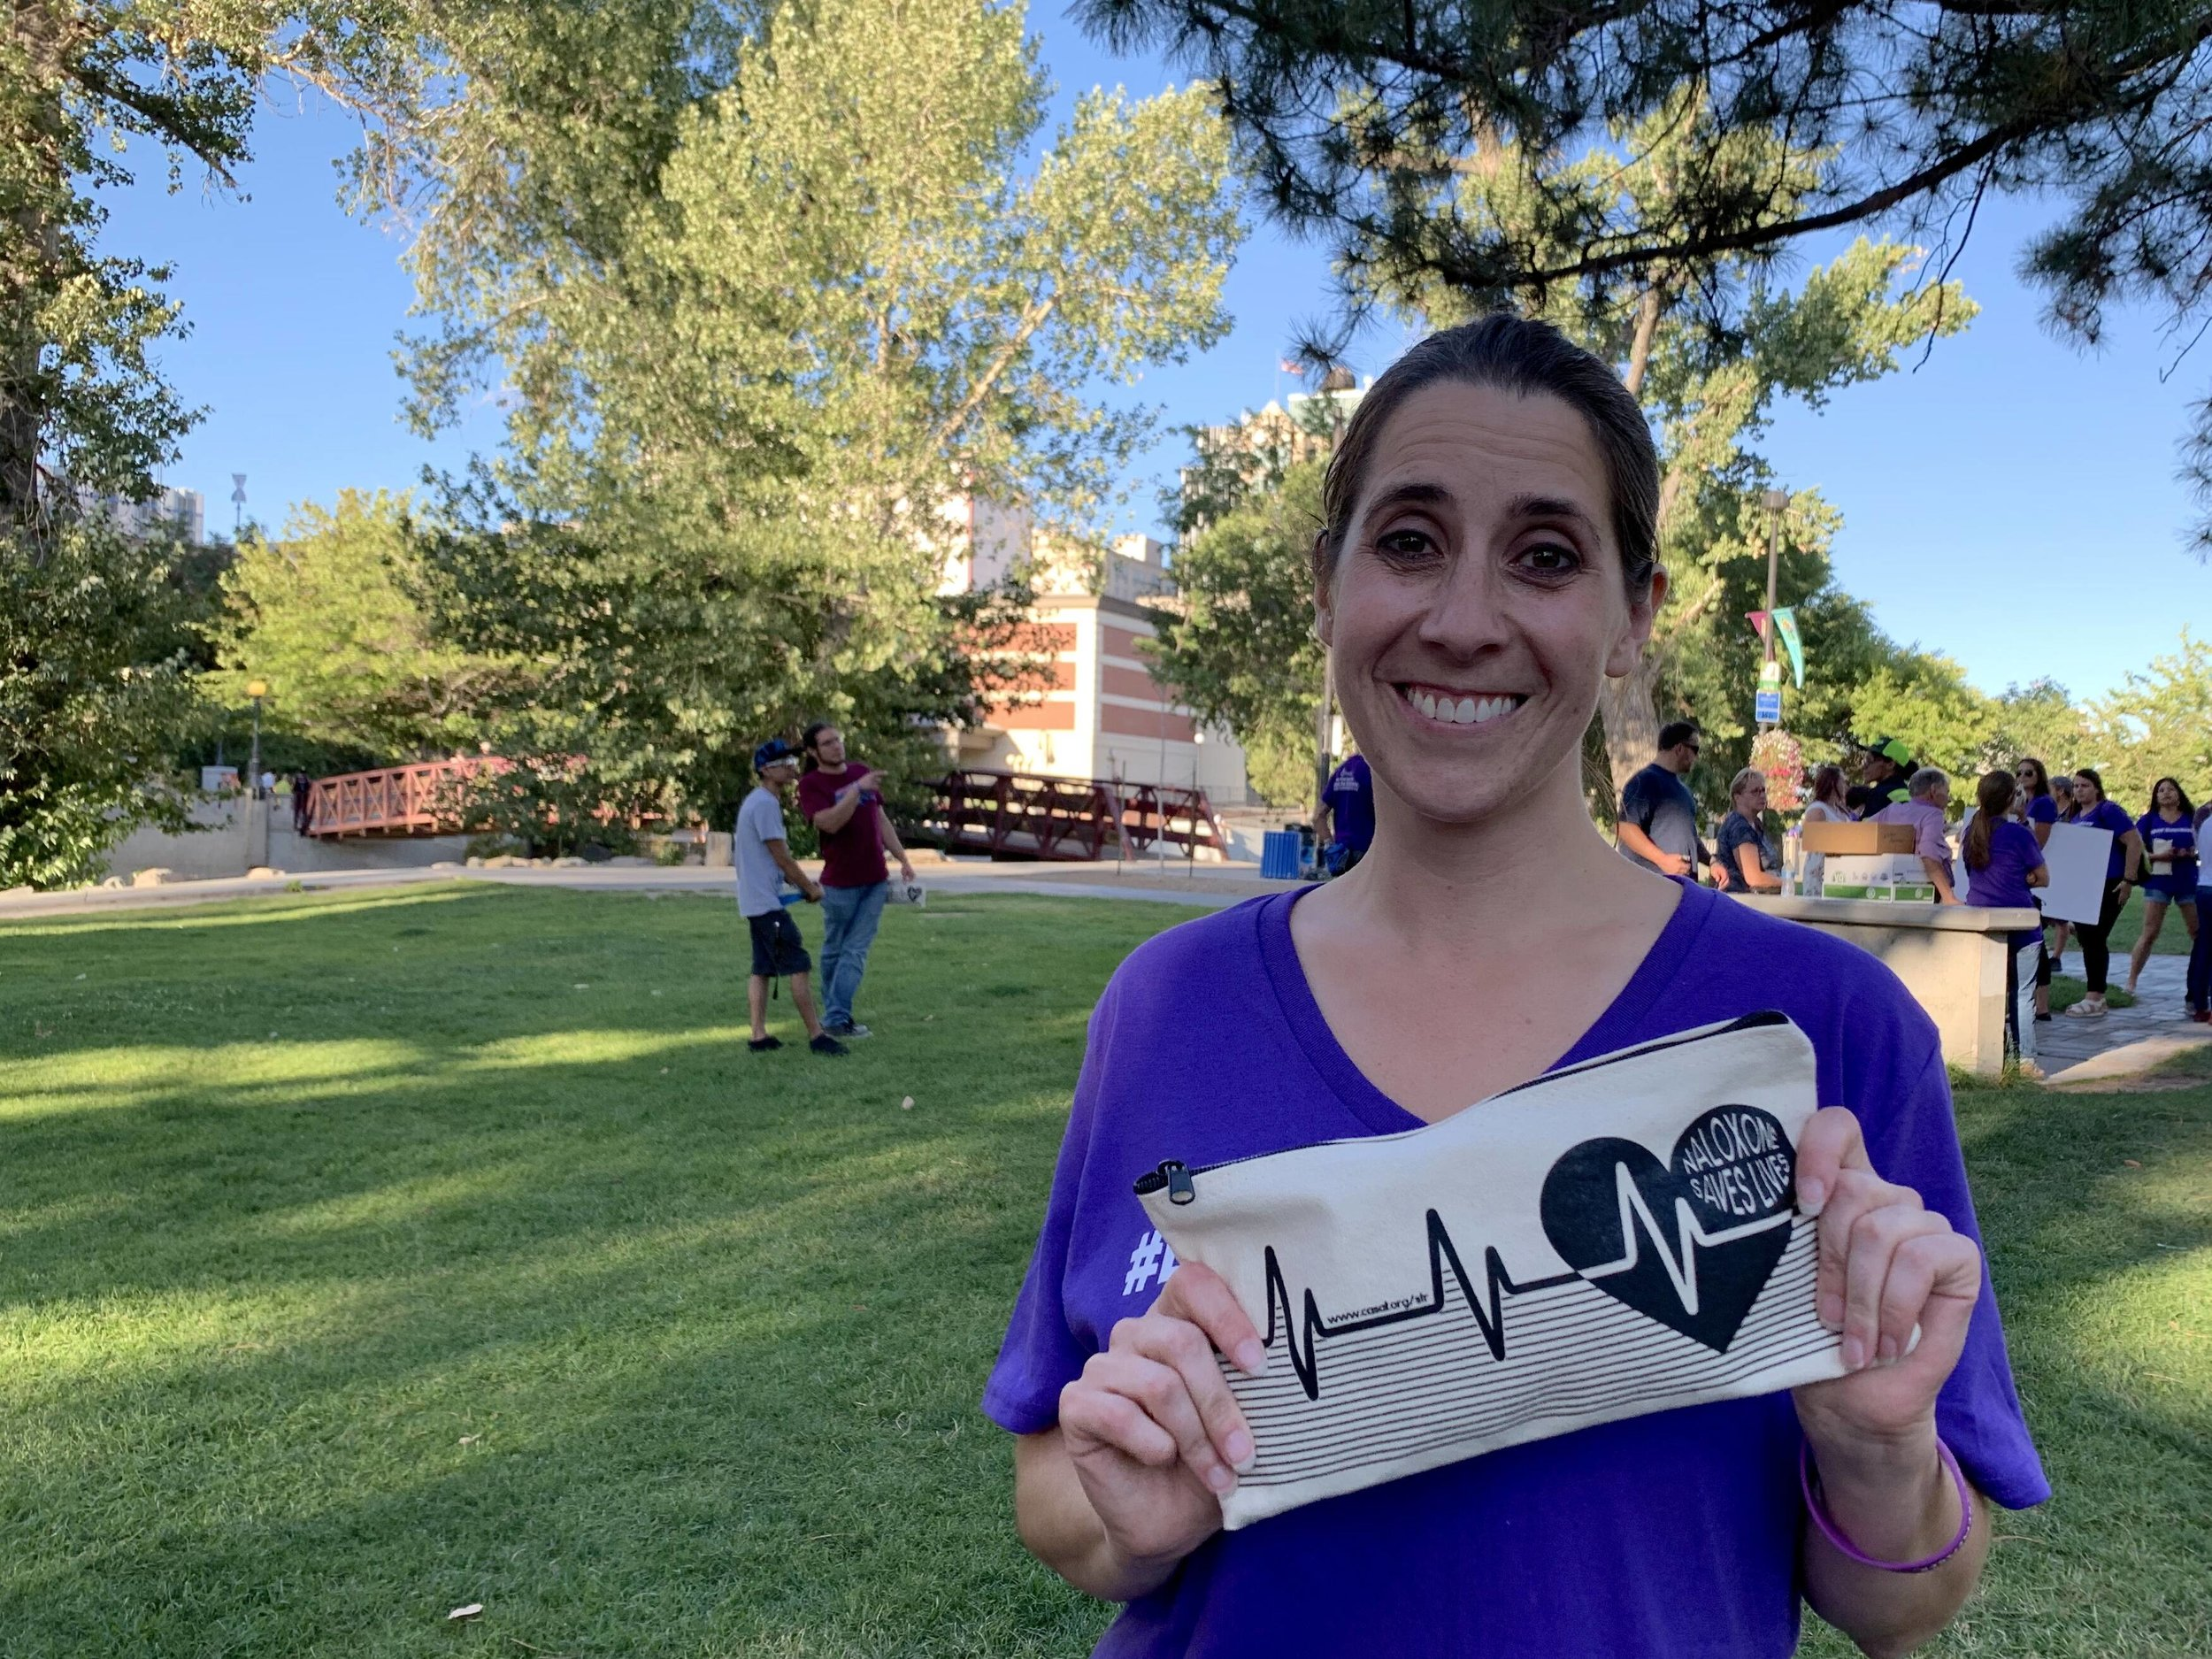 "Morgan Green from the Center for the Application of Substance Abuse Technologies at UNR took part in a recent event marking International Overdose Awareness Day. She passed out naloxone kits, which are used to counter effects of an opioid overdose. ""I think we're breaking a lot of barriers in terms of people who are overcoming addiction, but there's still a long way to go,"" she said. ""A lot of times we tend to pretend that they don't exist, they hide in corners. People themselves don't even recognize when they have a problem because we don't talk about it. We want to make sure that the education's out there, that the compassion is there."""